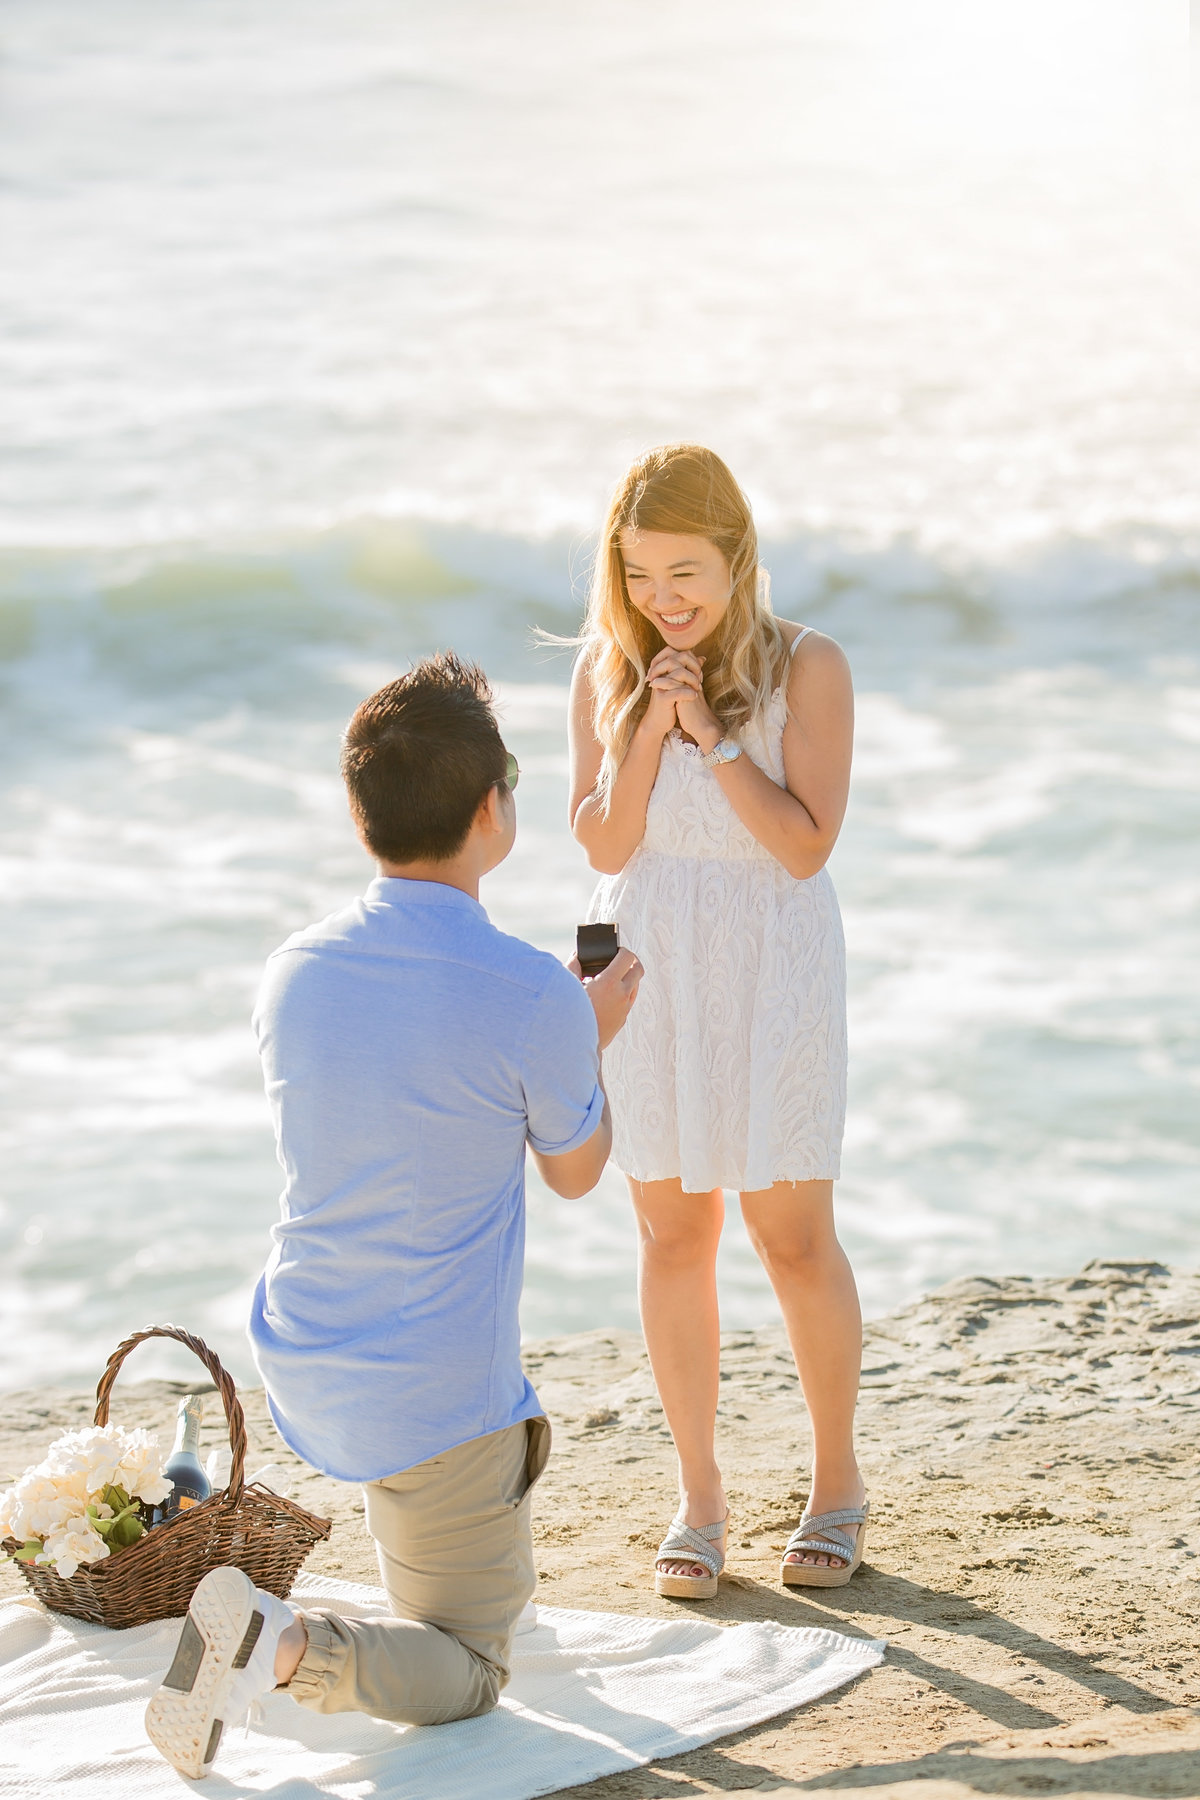 babsie-ly-photography-surprise-proposal-photographer-san-diego-california-sunset-cliffs-epic-scenery-015